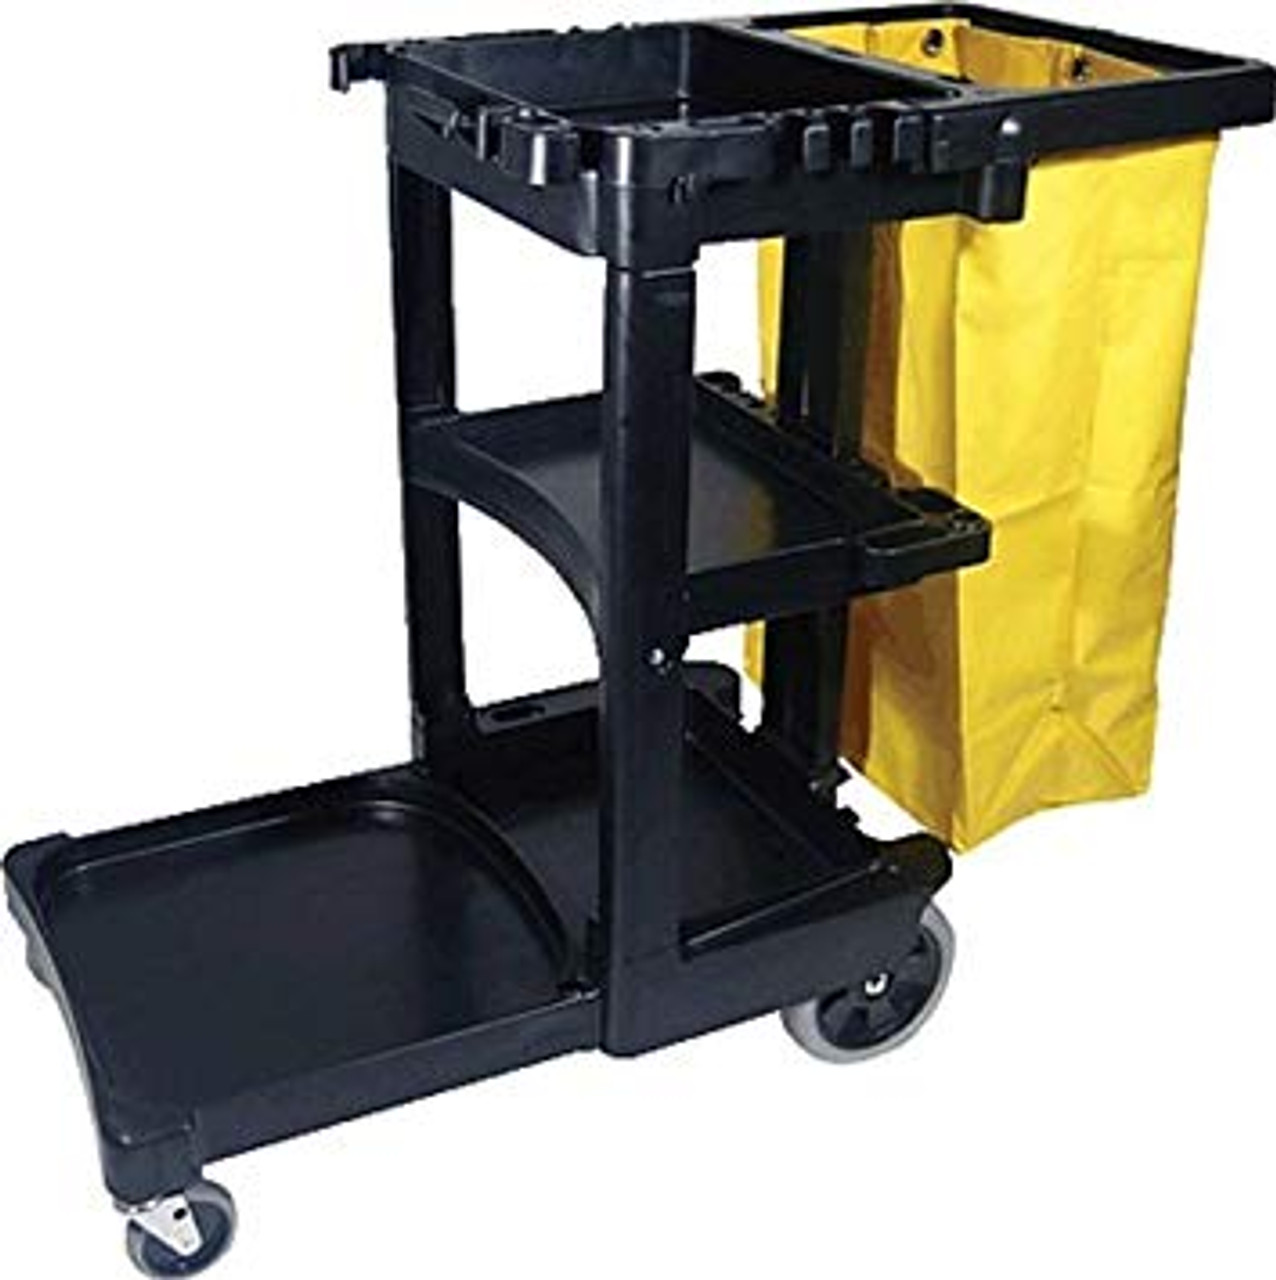 Rubbermaid Janitor Cart With Bag